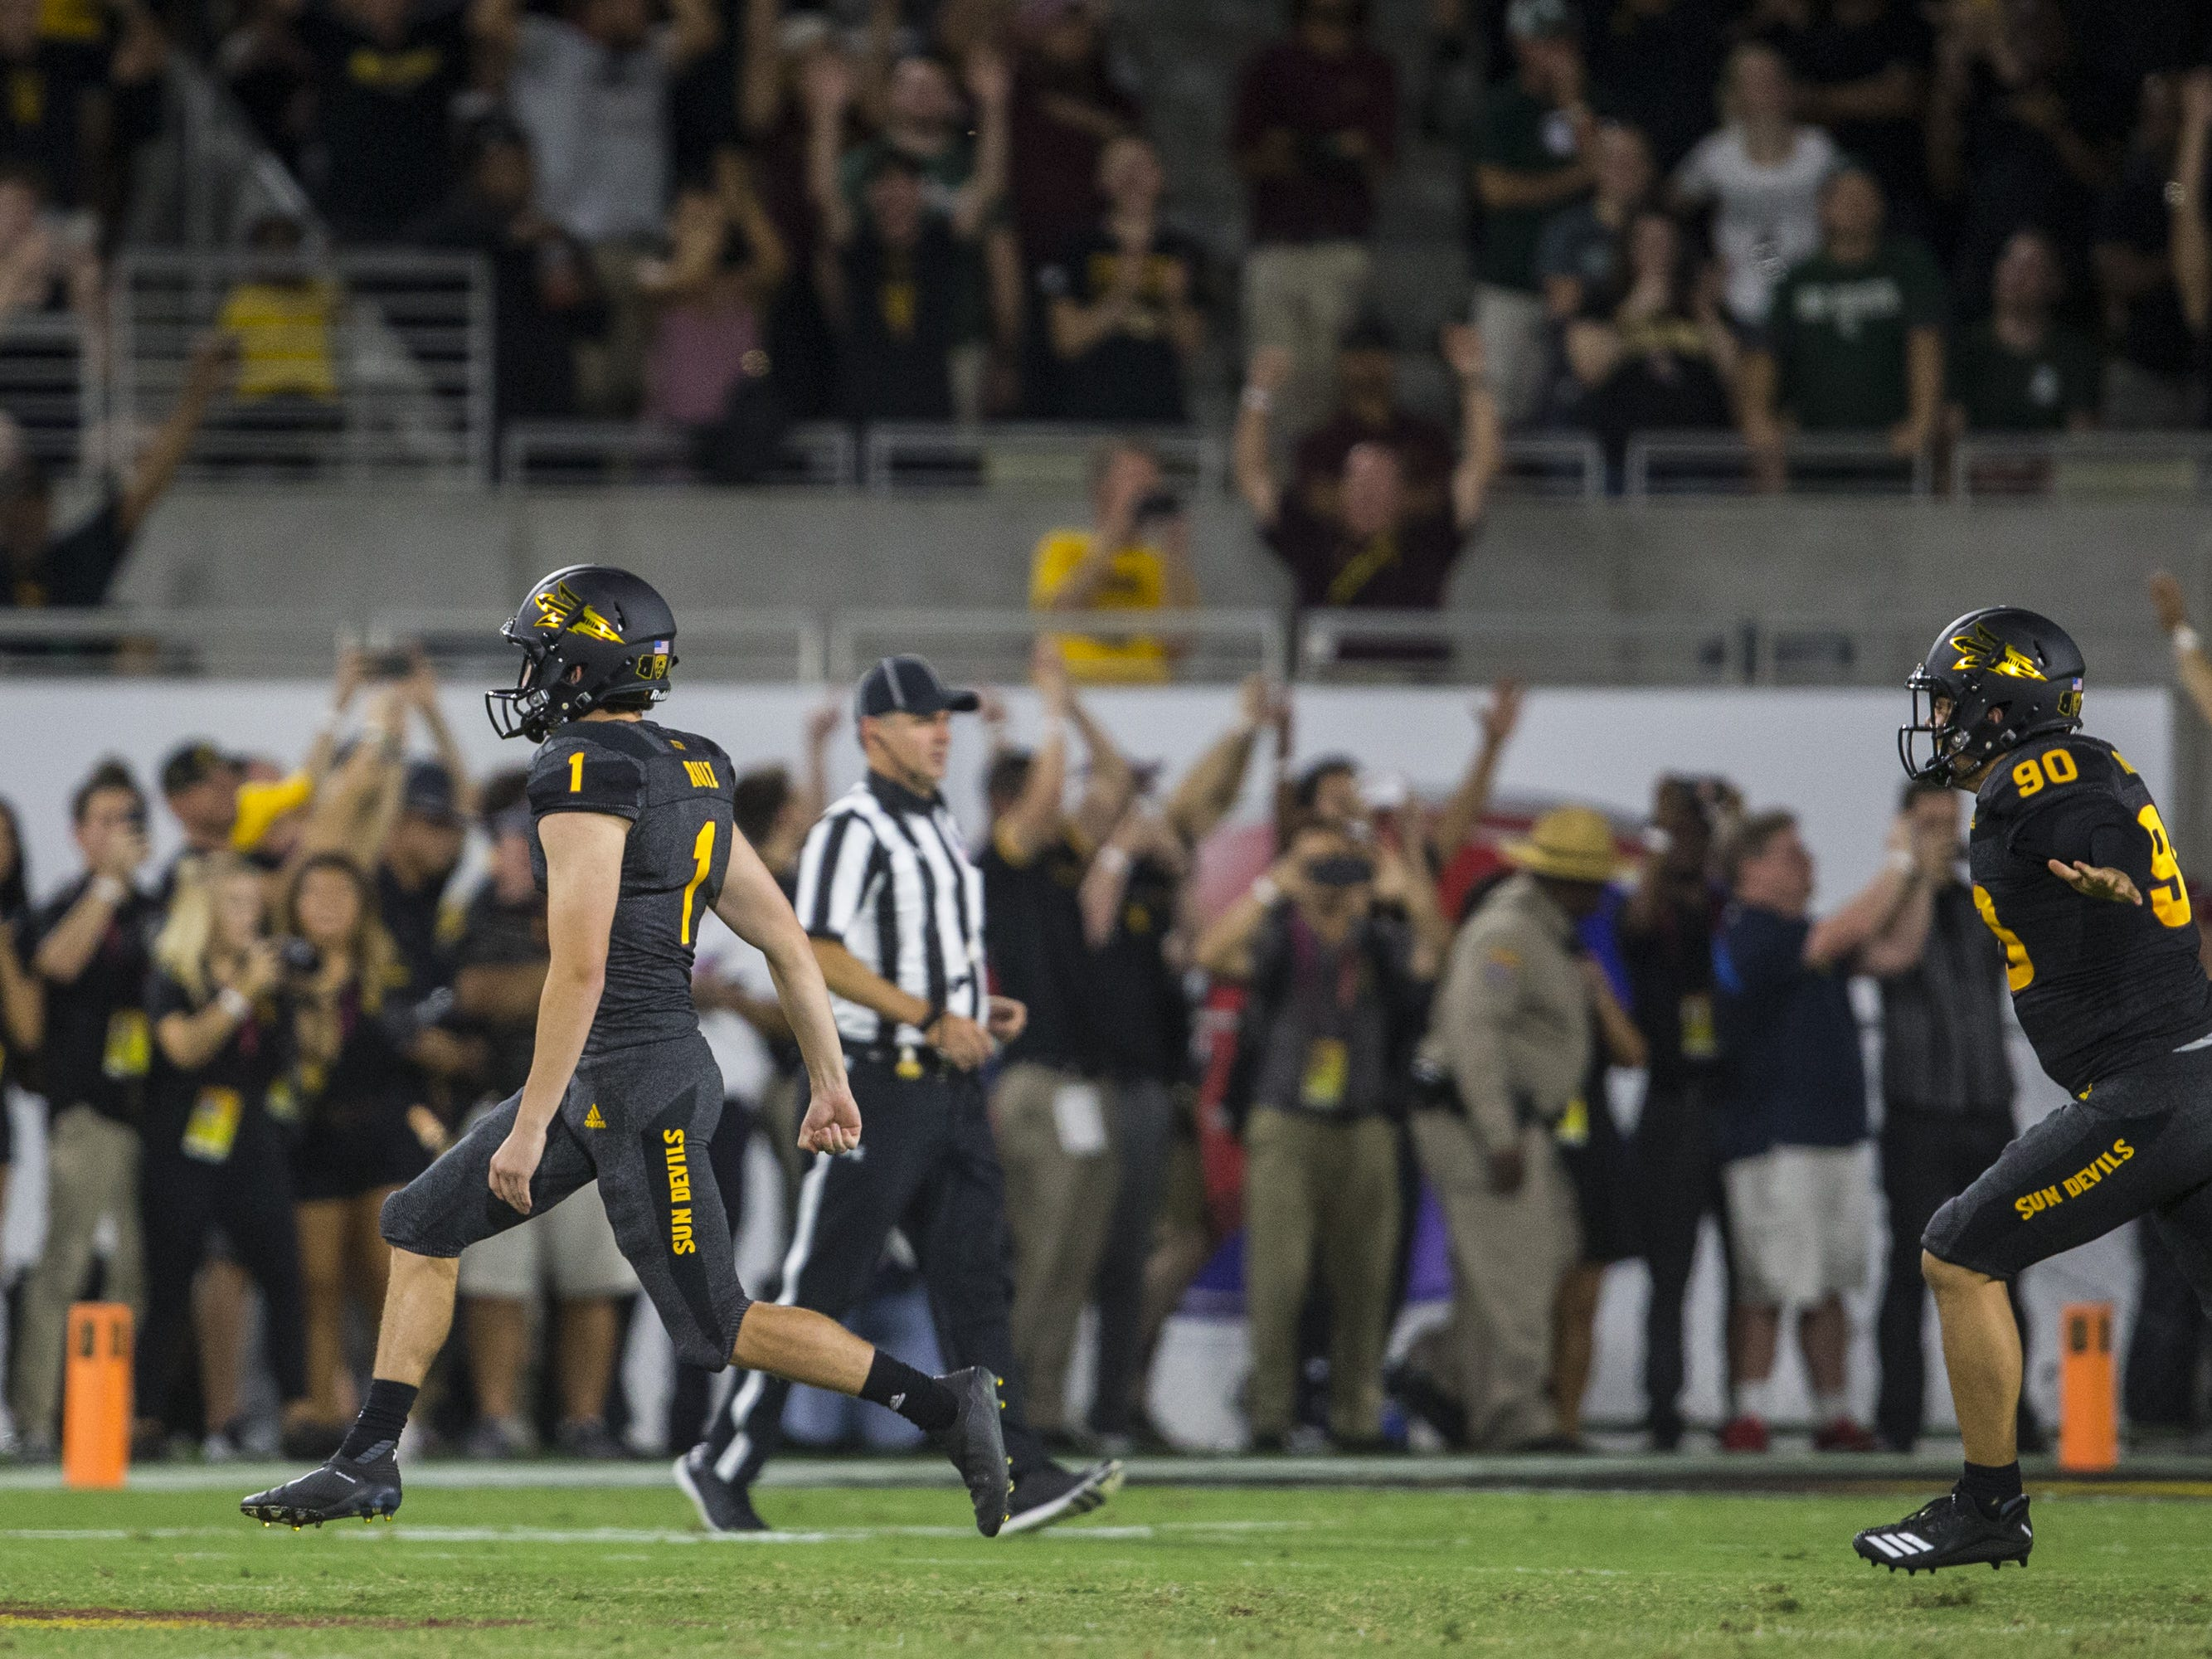 Arizona State's Brandon Ruiz celebrates after kicking the game-winning field goal against Michigan State in the 4th quarter on Saturday, Sept. 8, 2018, at Sun Devil Stadium in Tempe, Ariz. Arizona State won, 16-13.